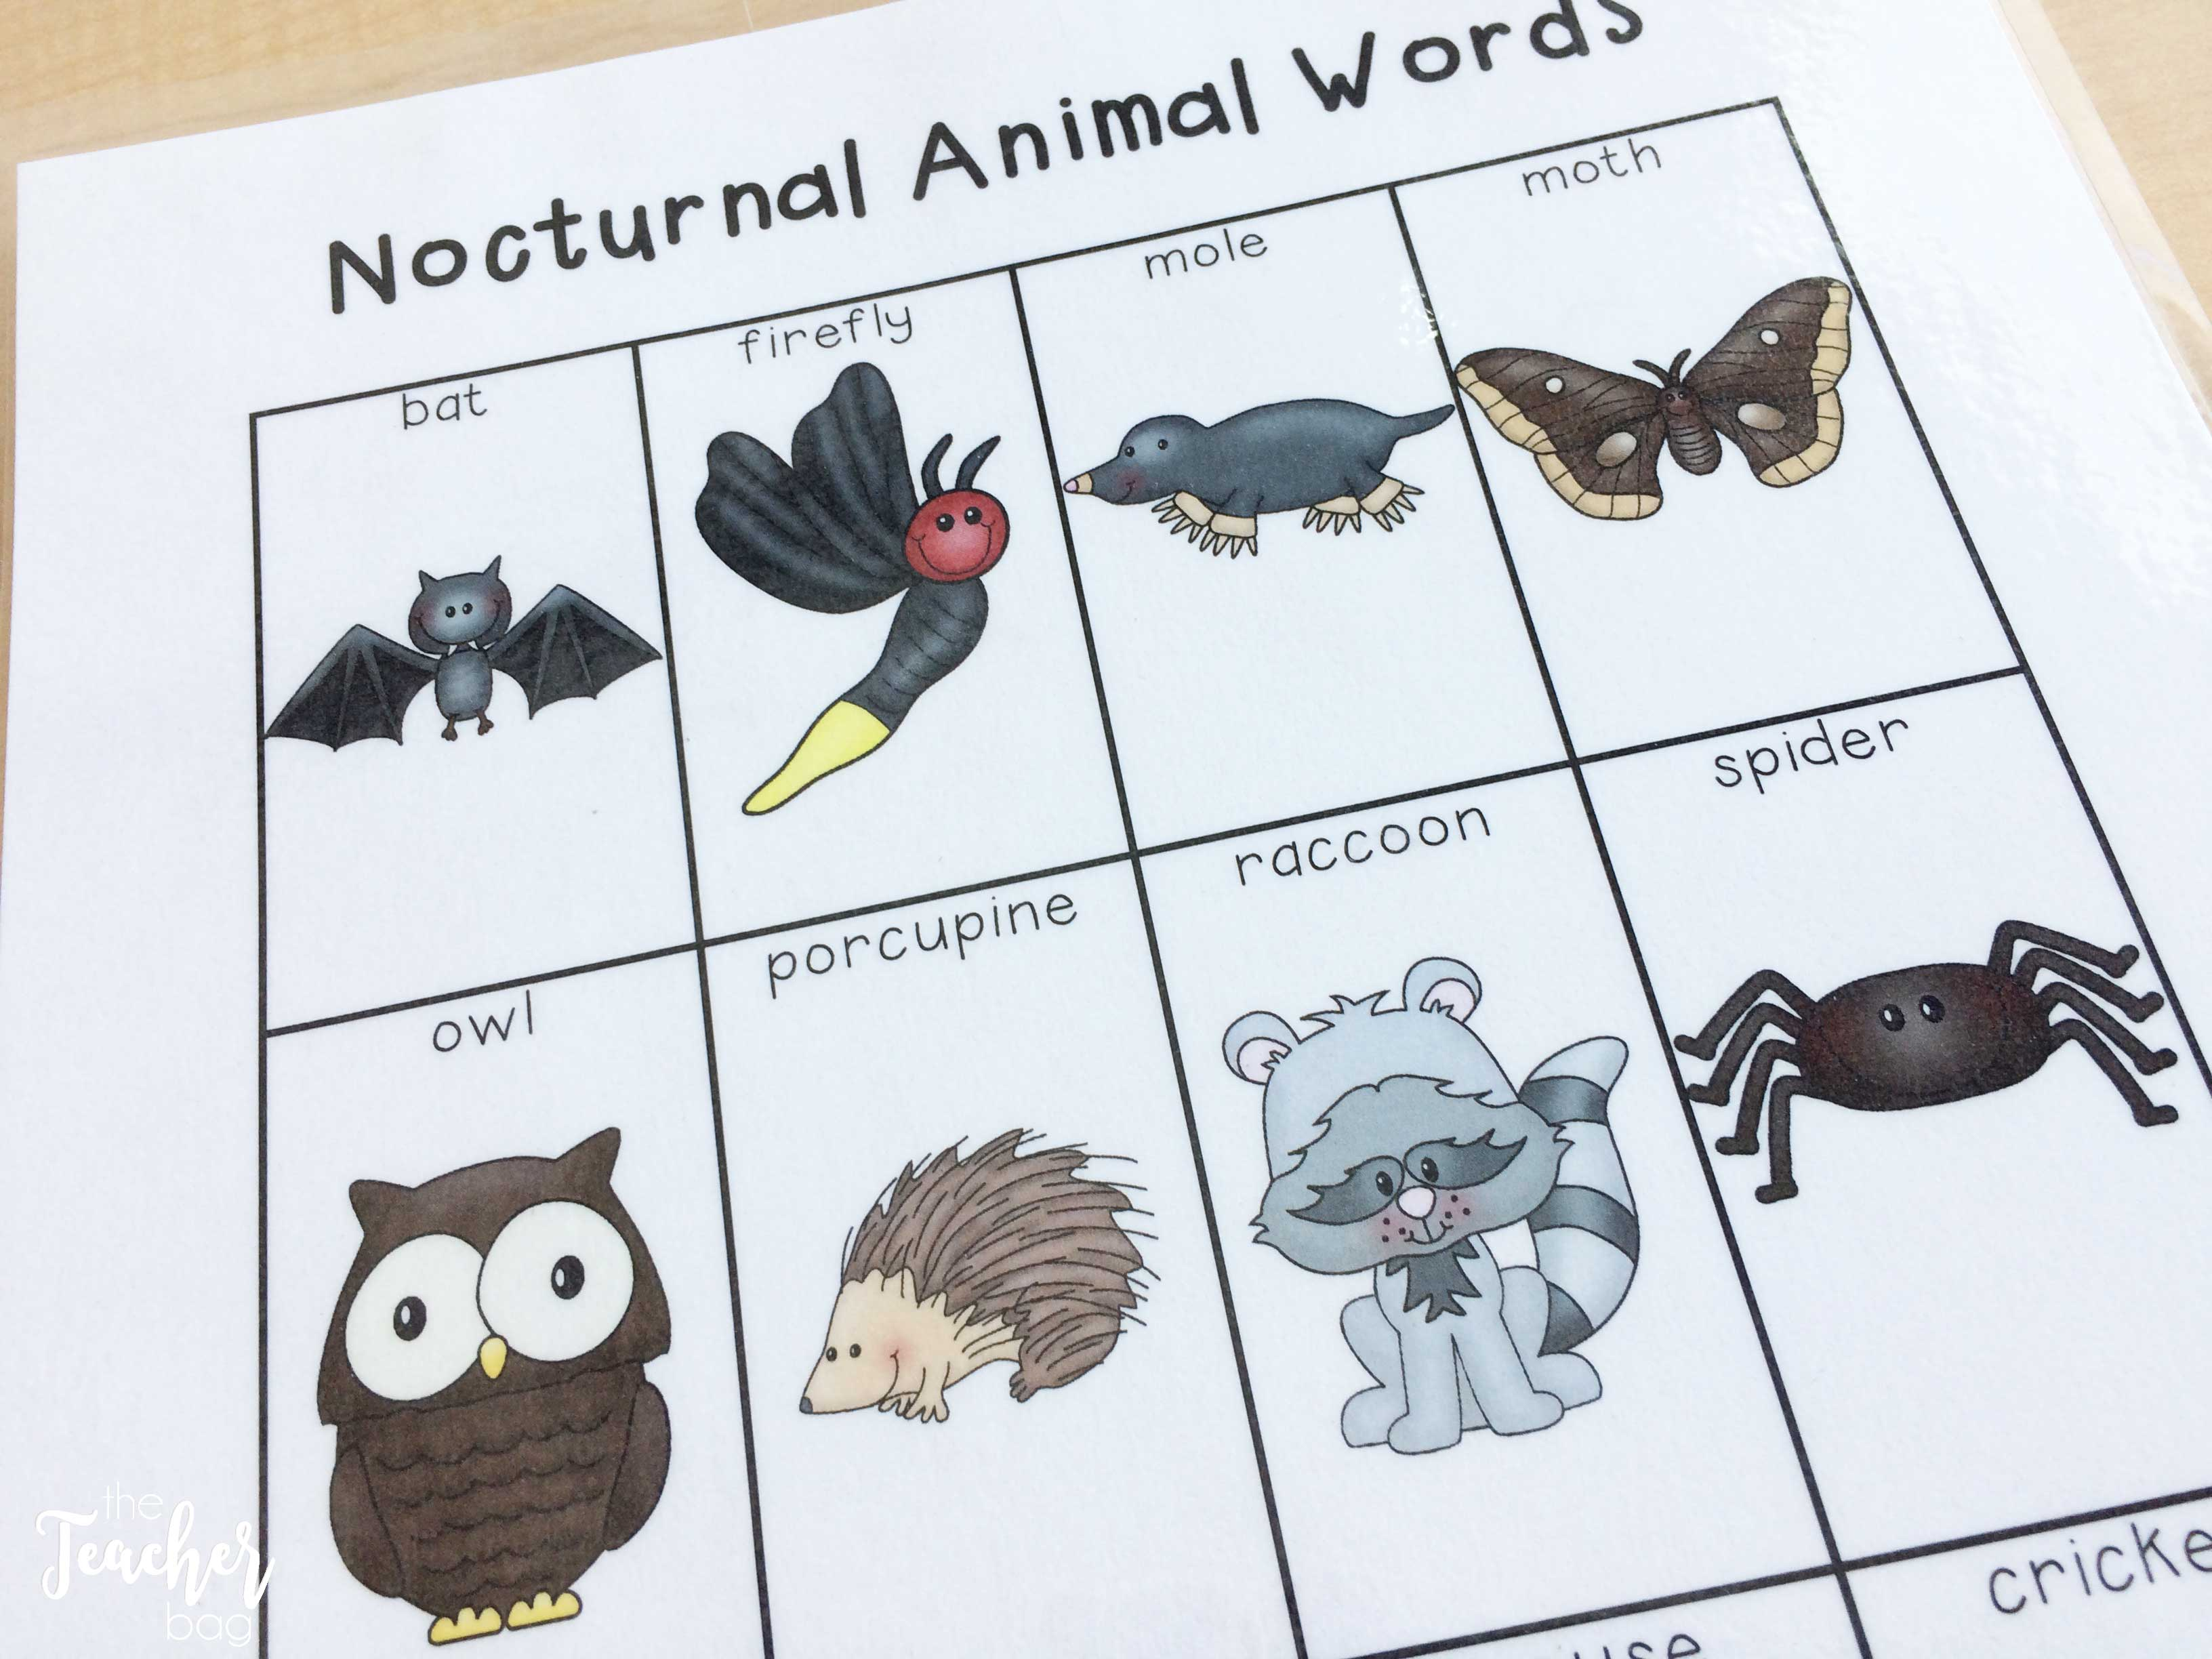 nocturnal-animals-word-list